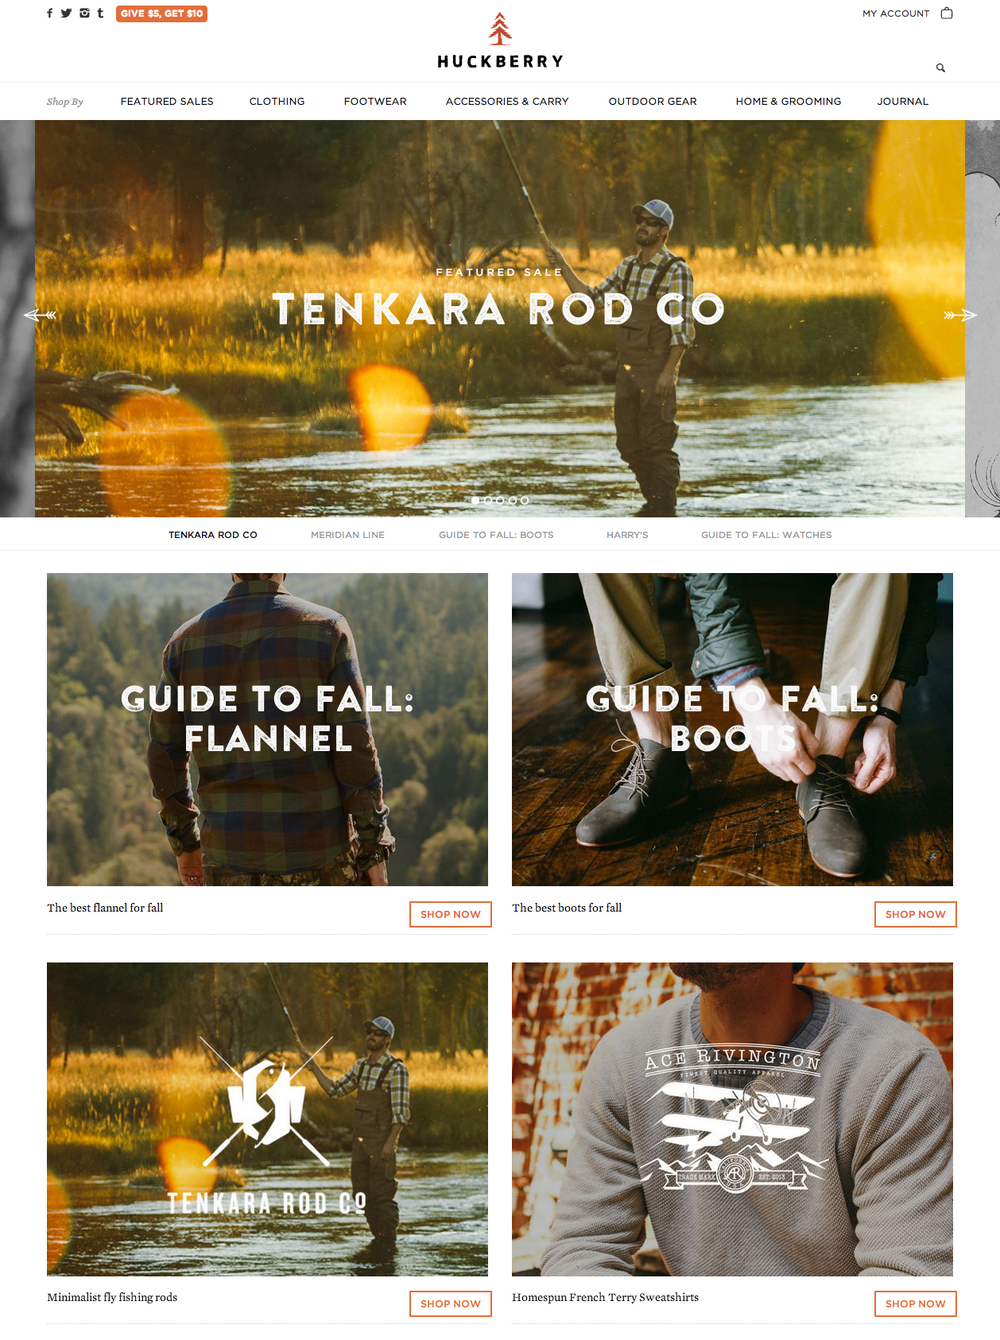 screencapture-huckberry-com copy.jpg